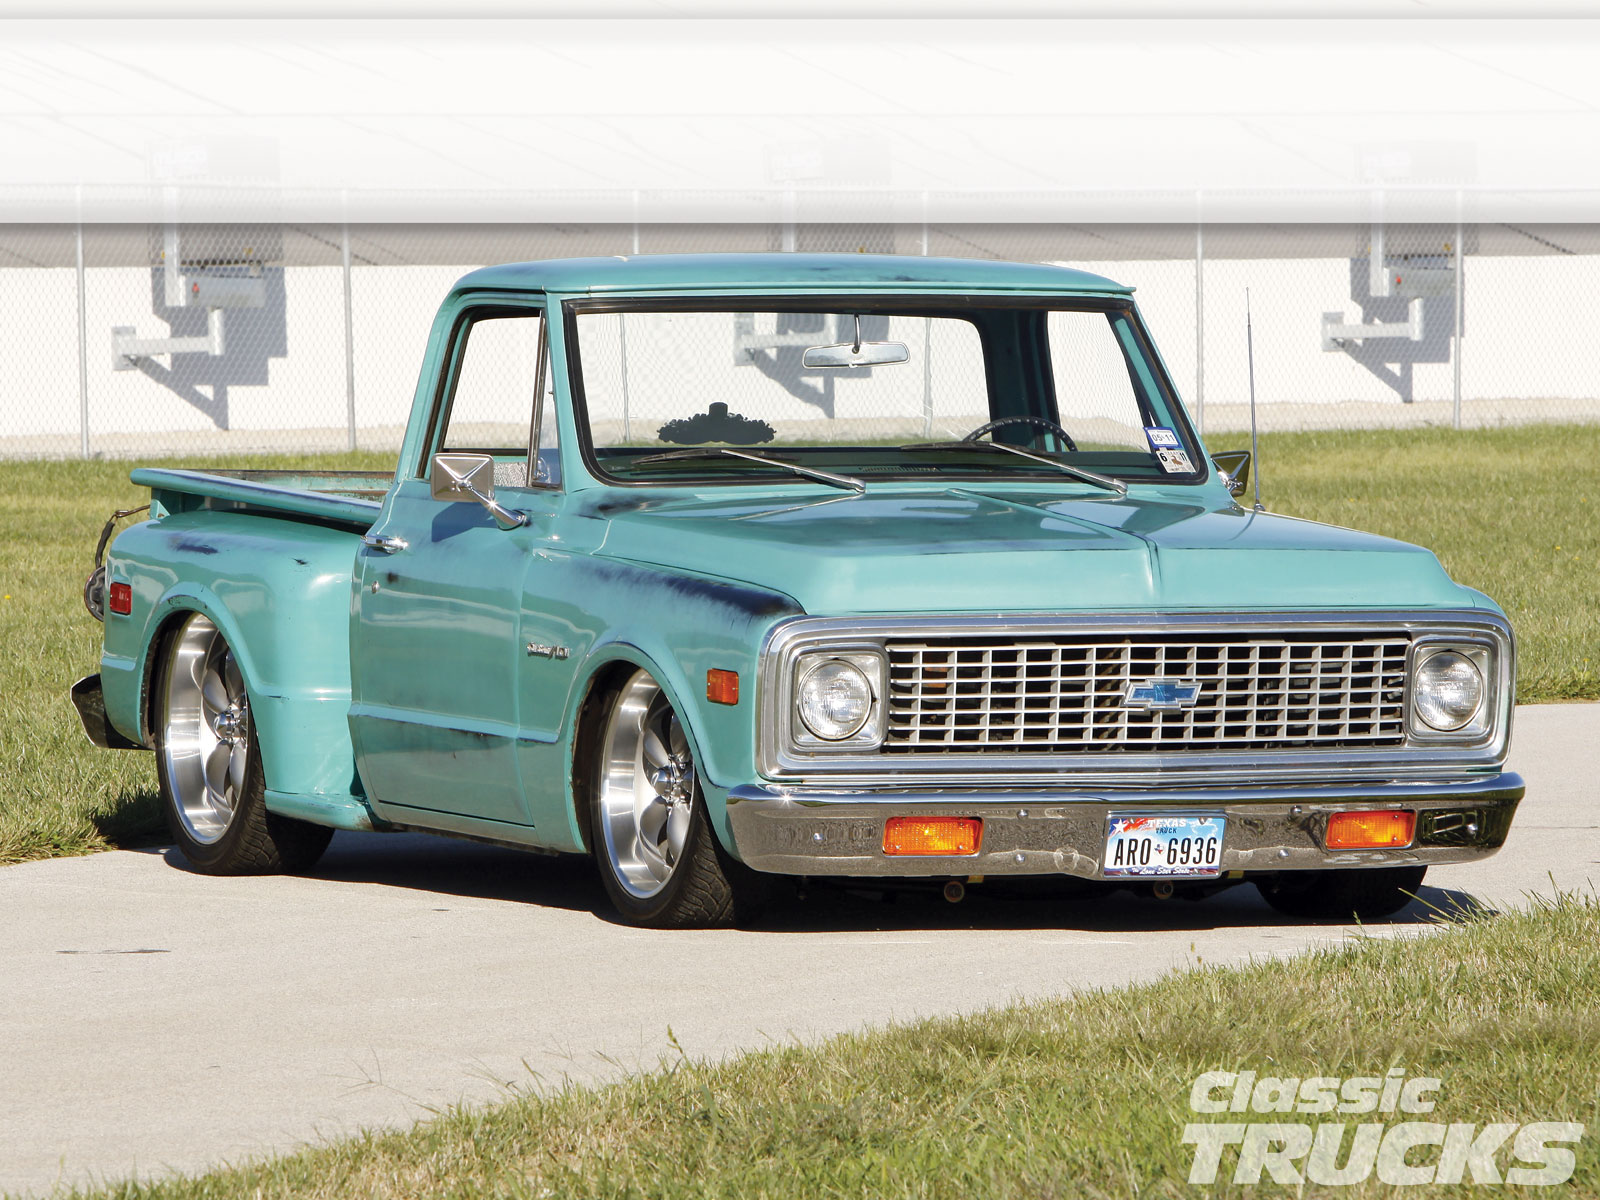 hight resolution of 1102clt 01 o 1971 chevy c10 front